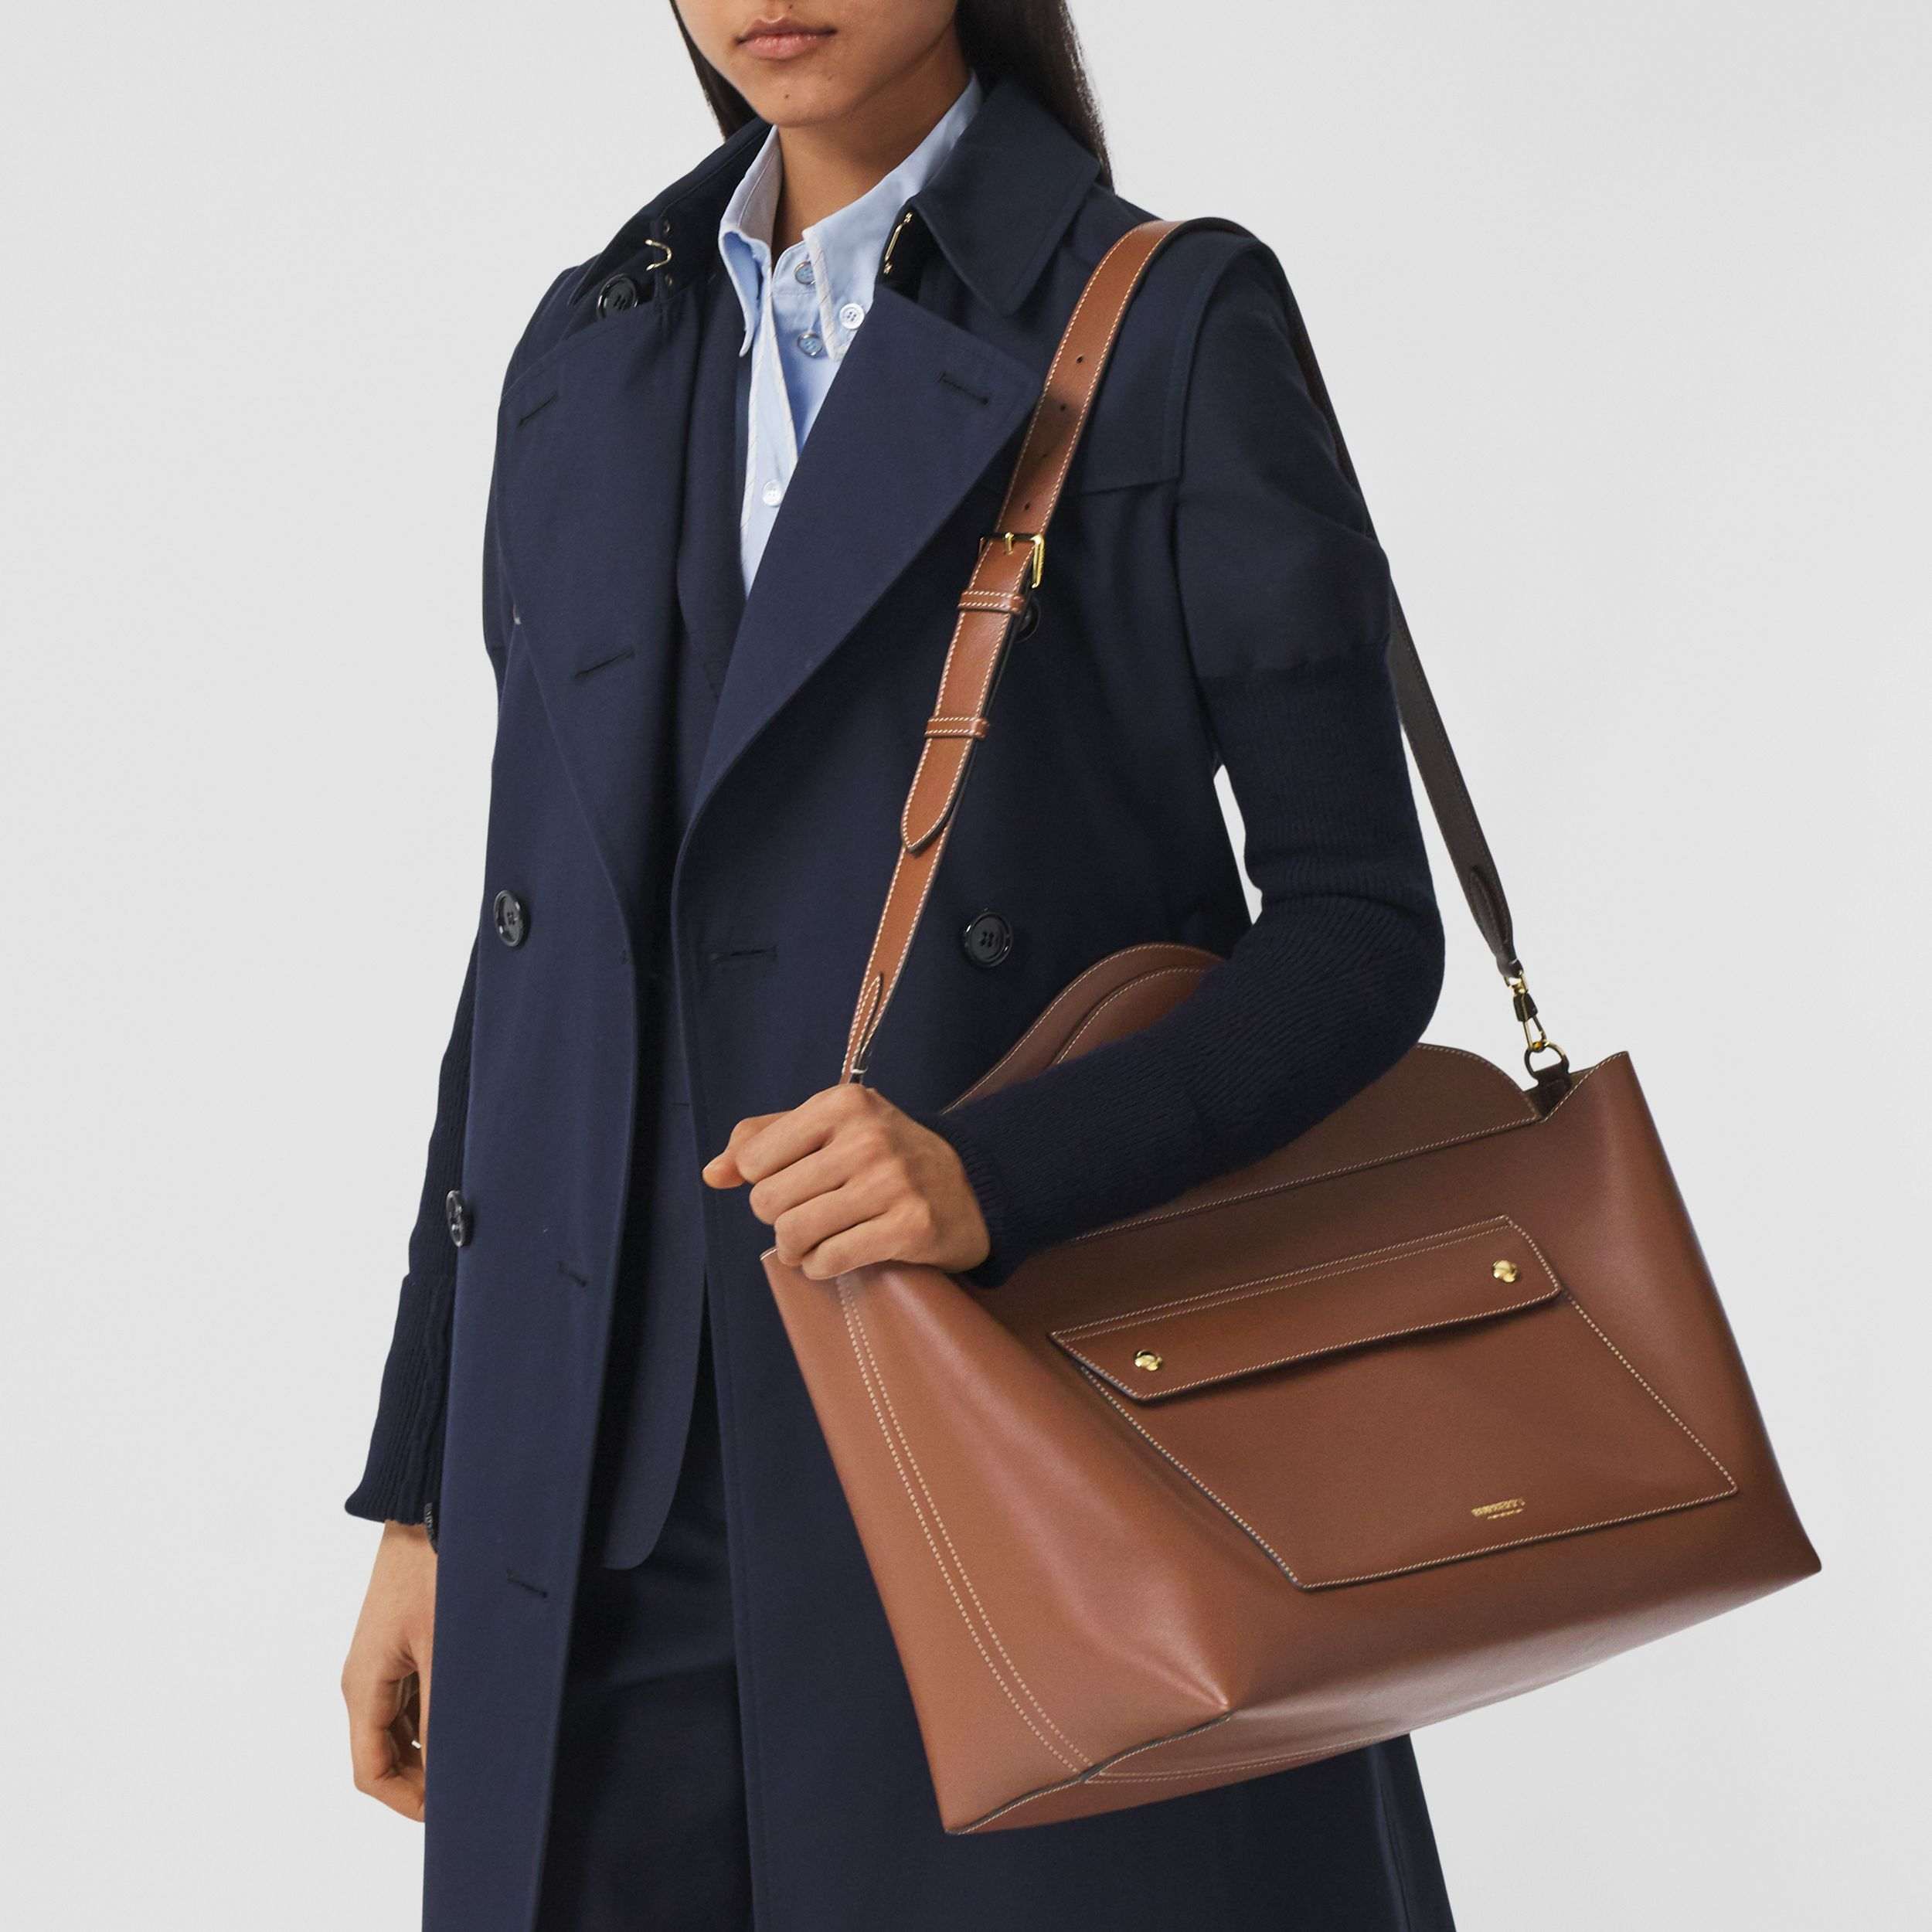 Medium Leather Soft Pocket Tote in Tan - Women | Burberry - 3